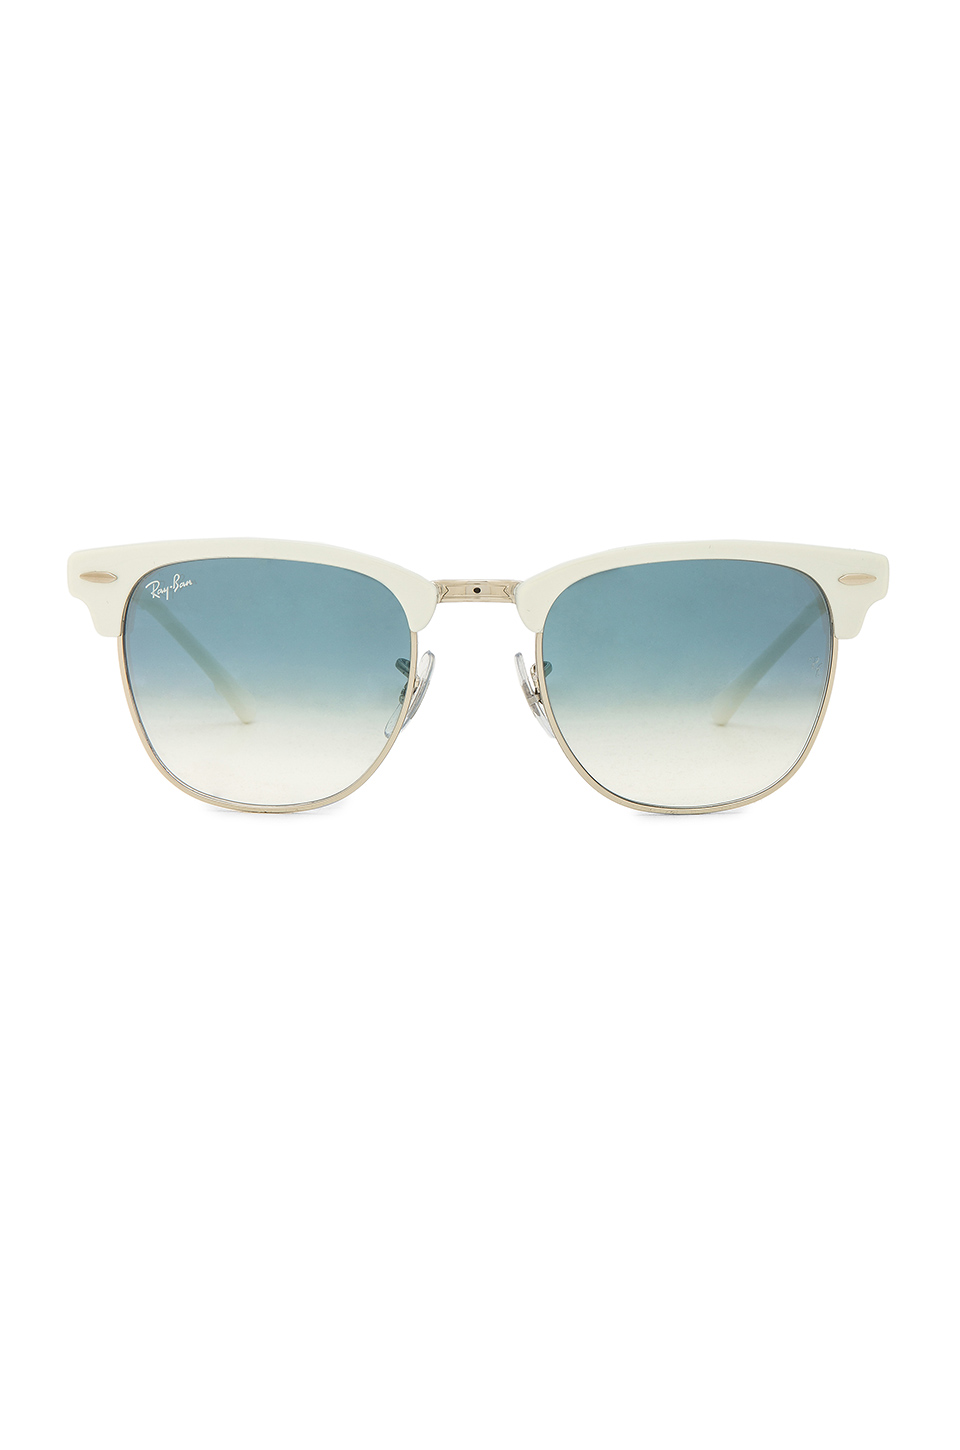 Ray-Ban Metal Clubmaster in Silver, White & Blue Gradient